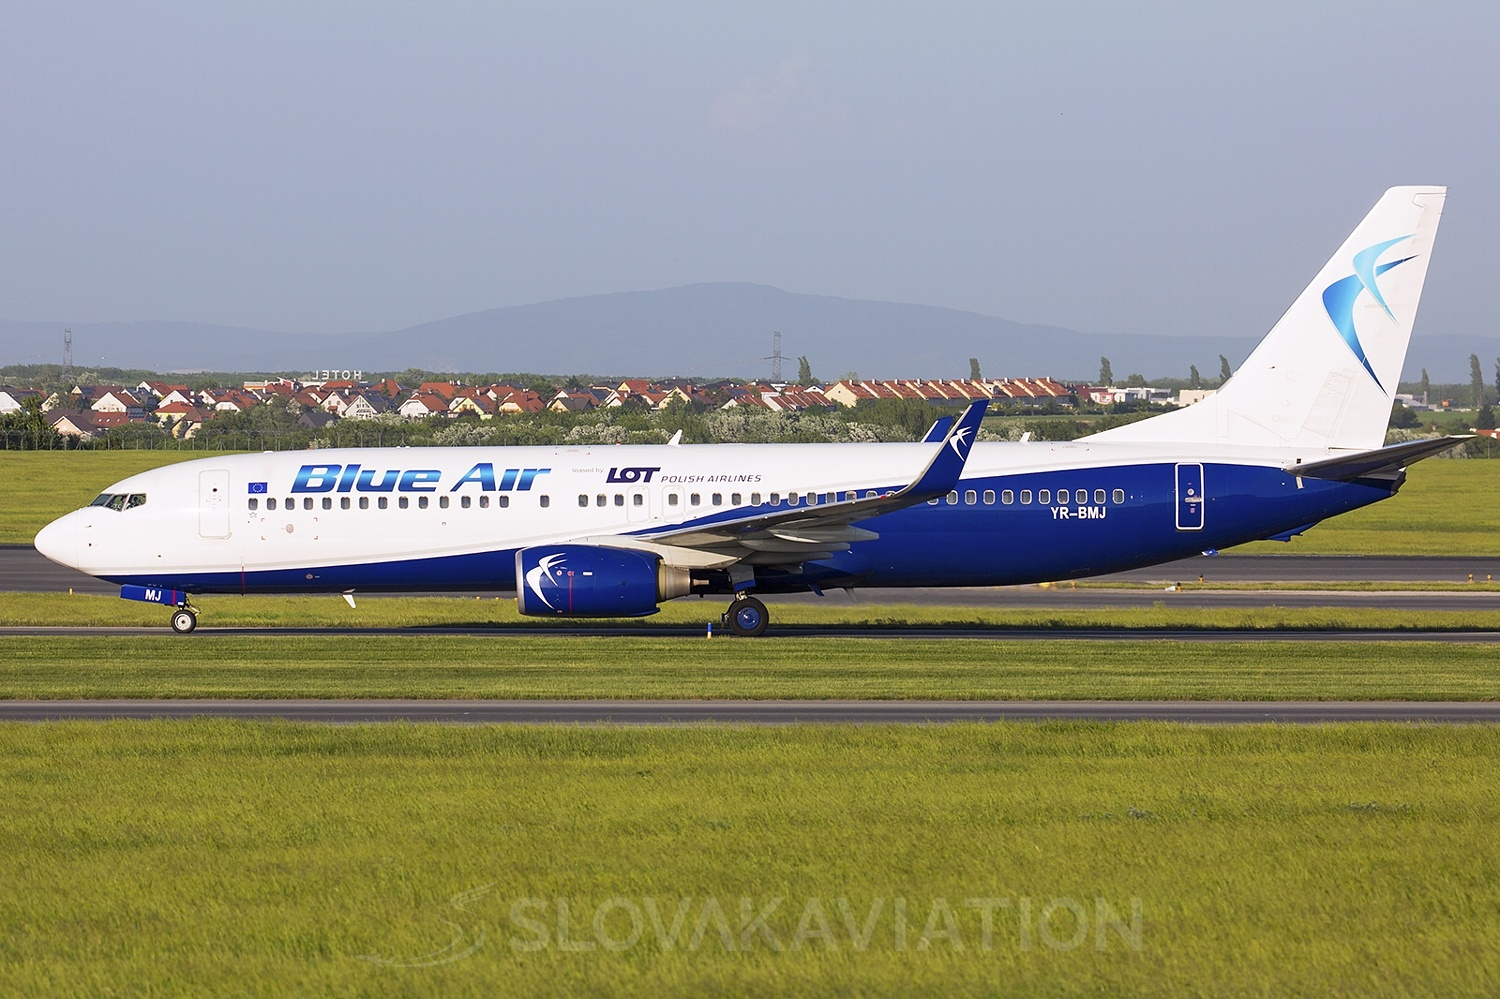 Blue Air Boeing 737-800 YR-BMJ